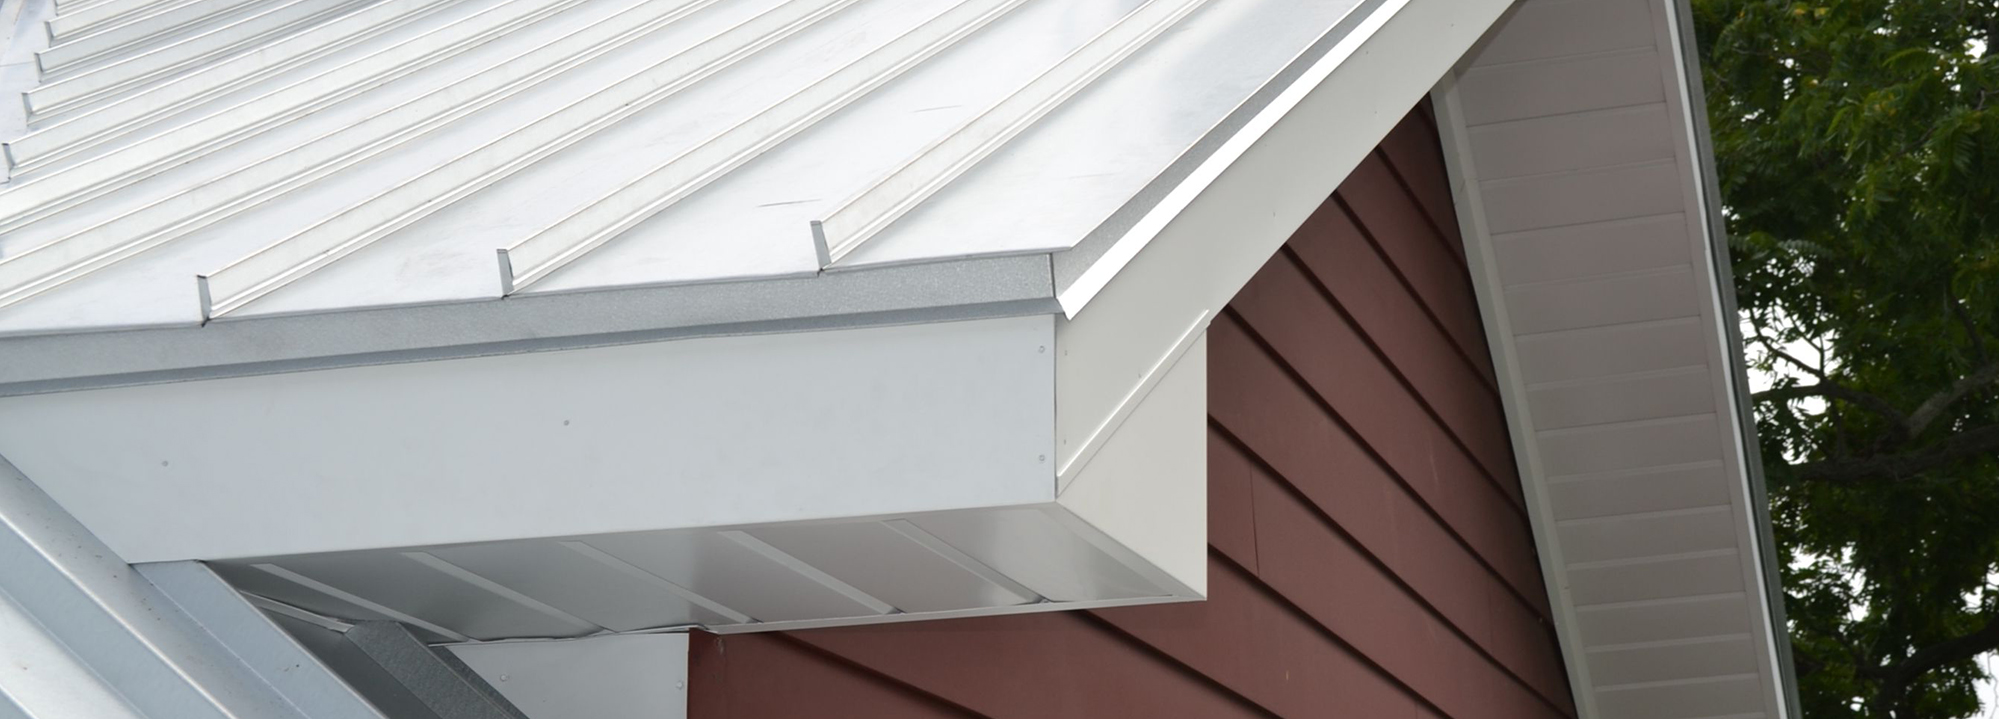 A photo of standing seam metal roofing.